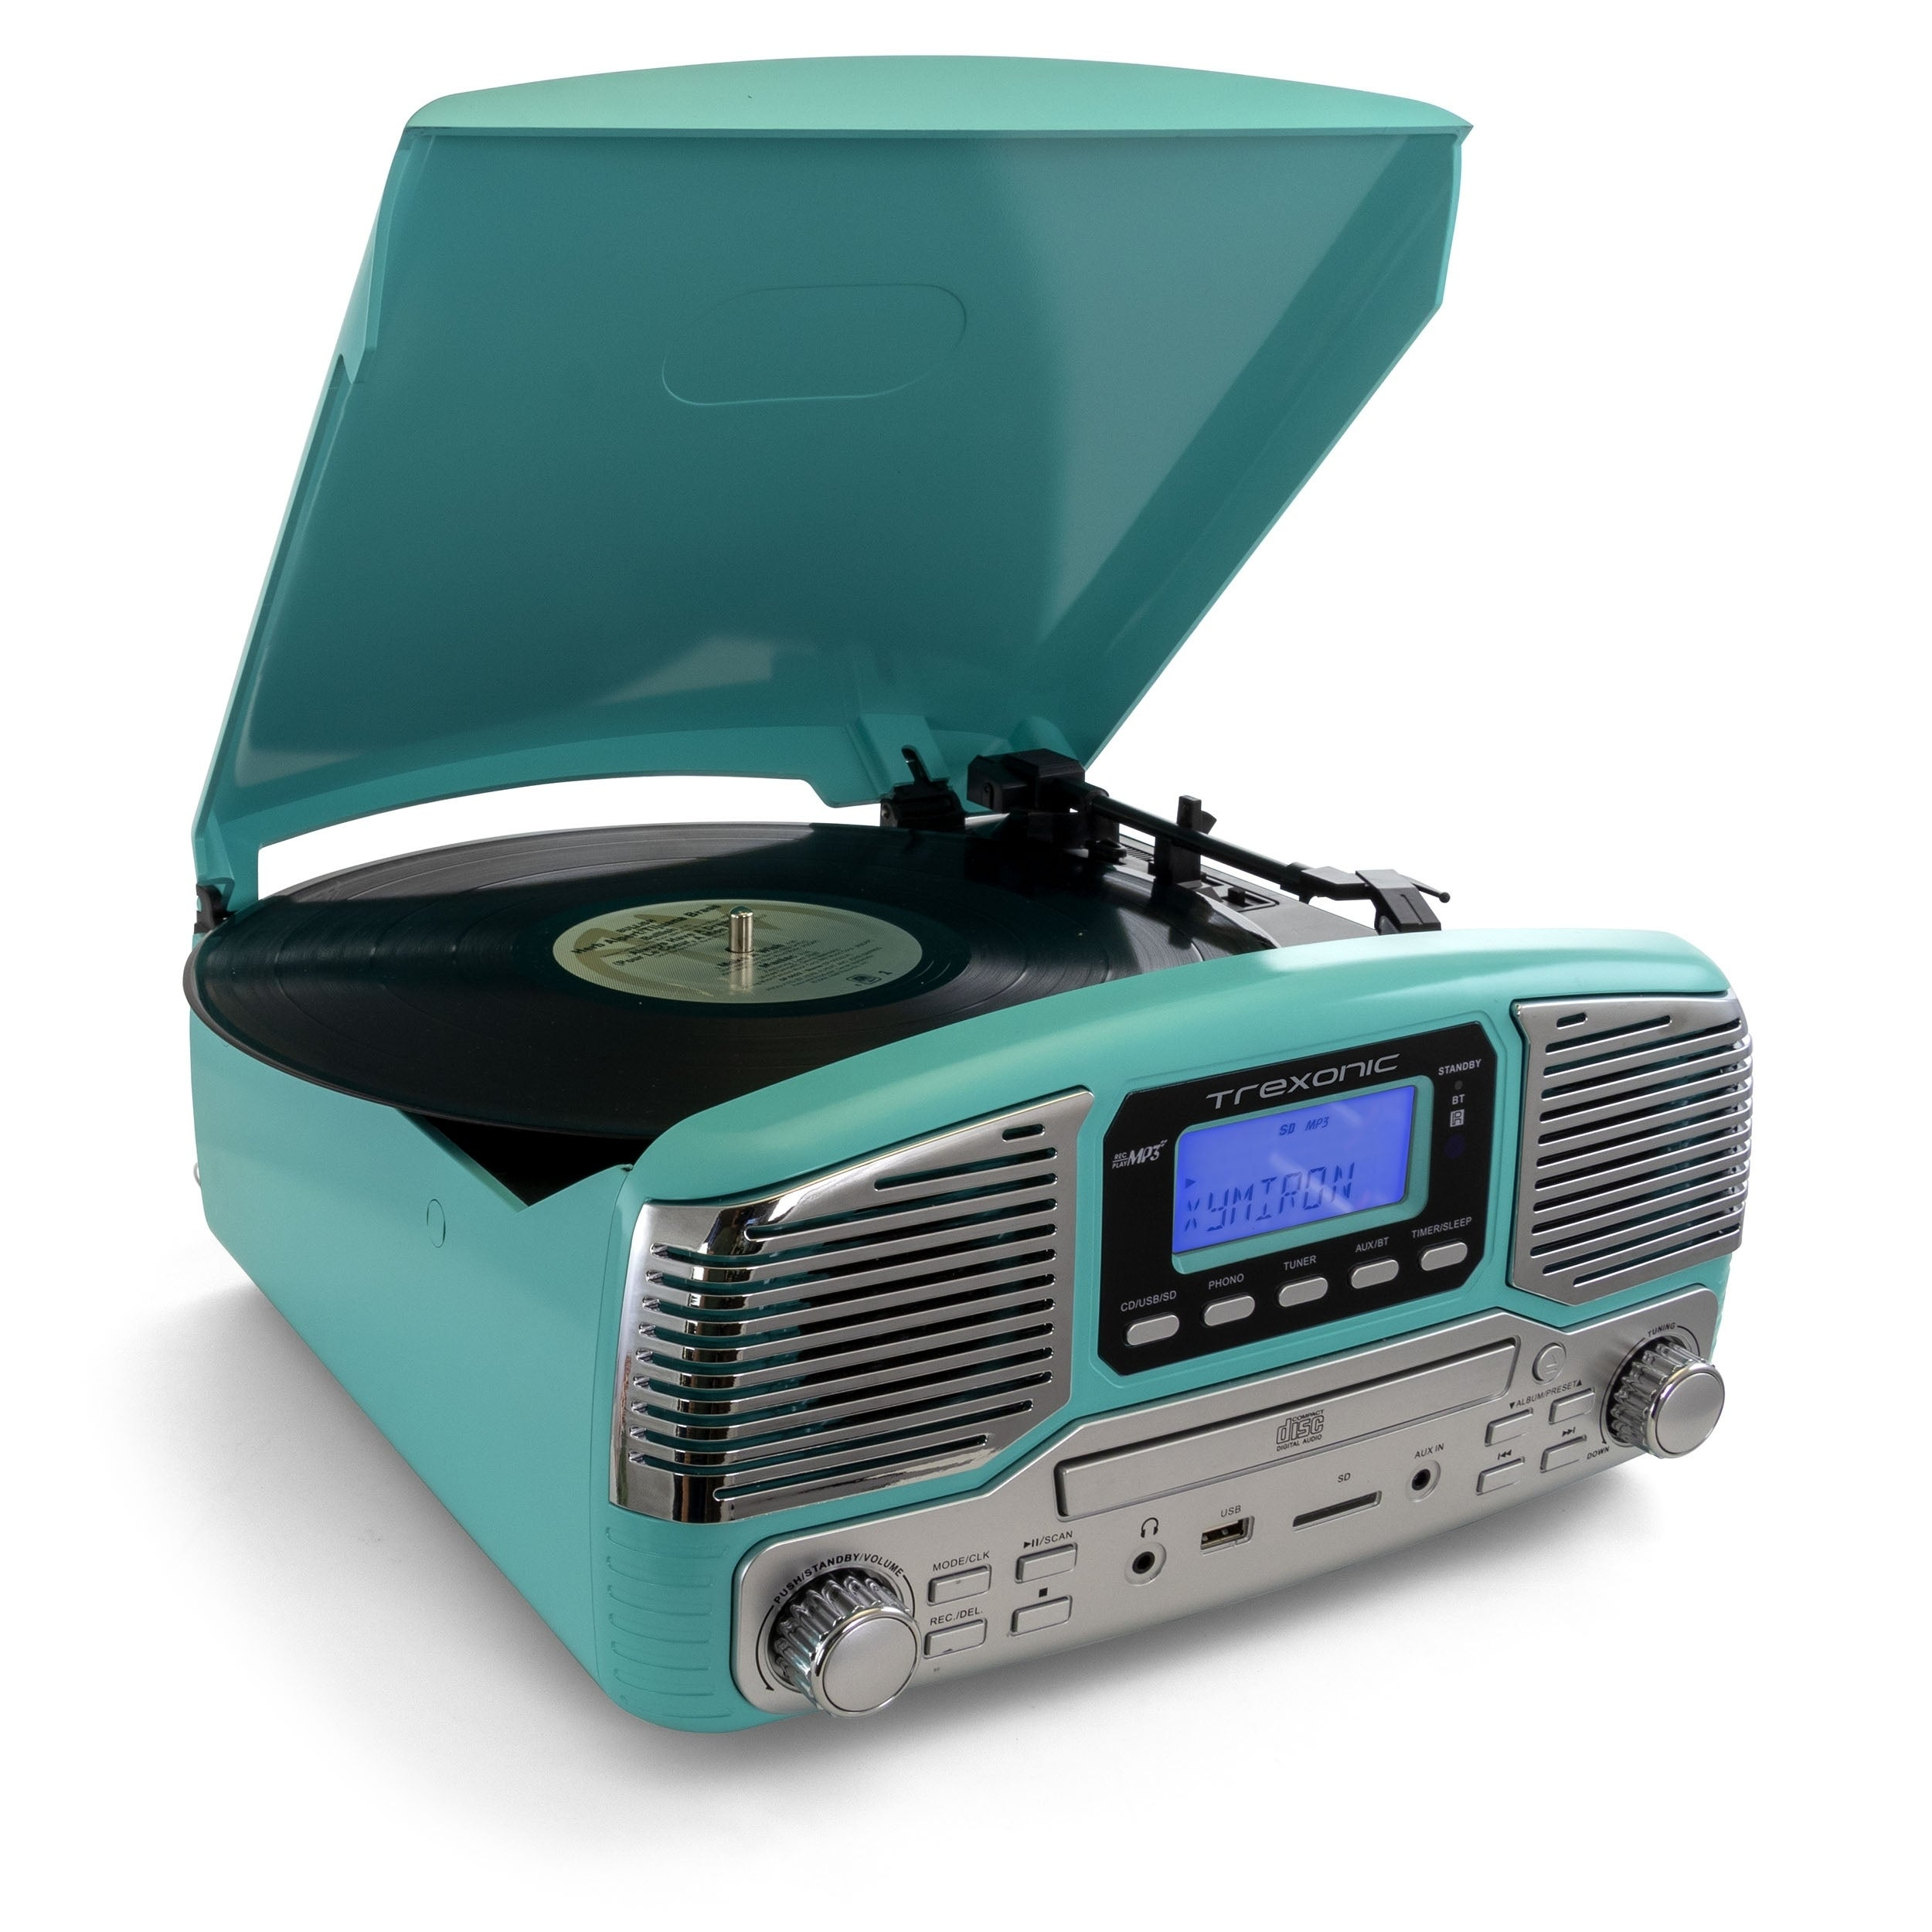 FM Radio USB Aux-In Bluetooth All-In-One Retro Turntable with CD Player